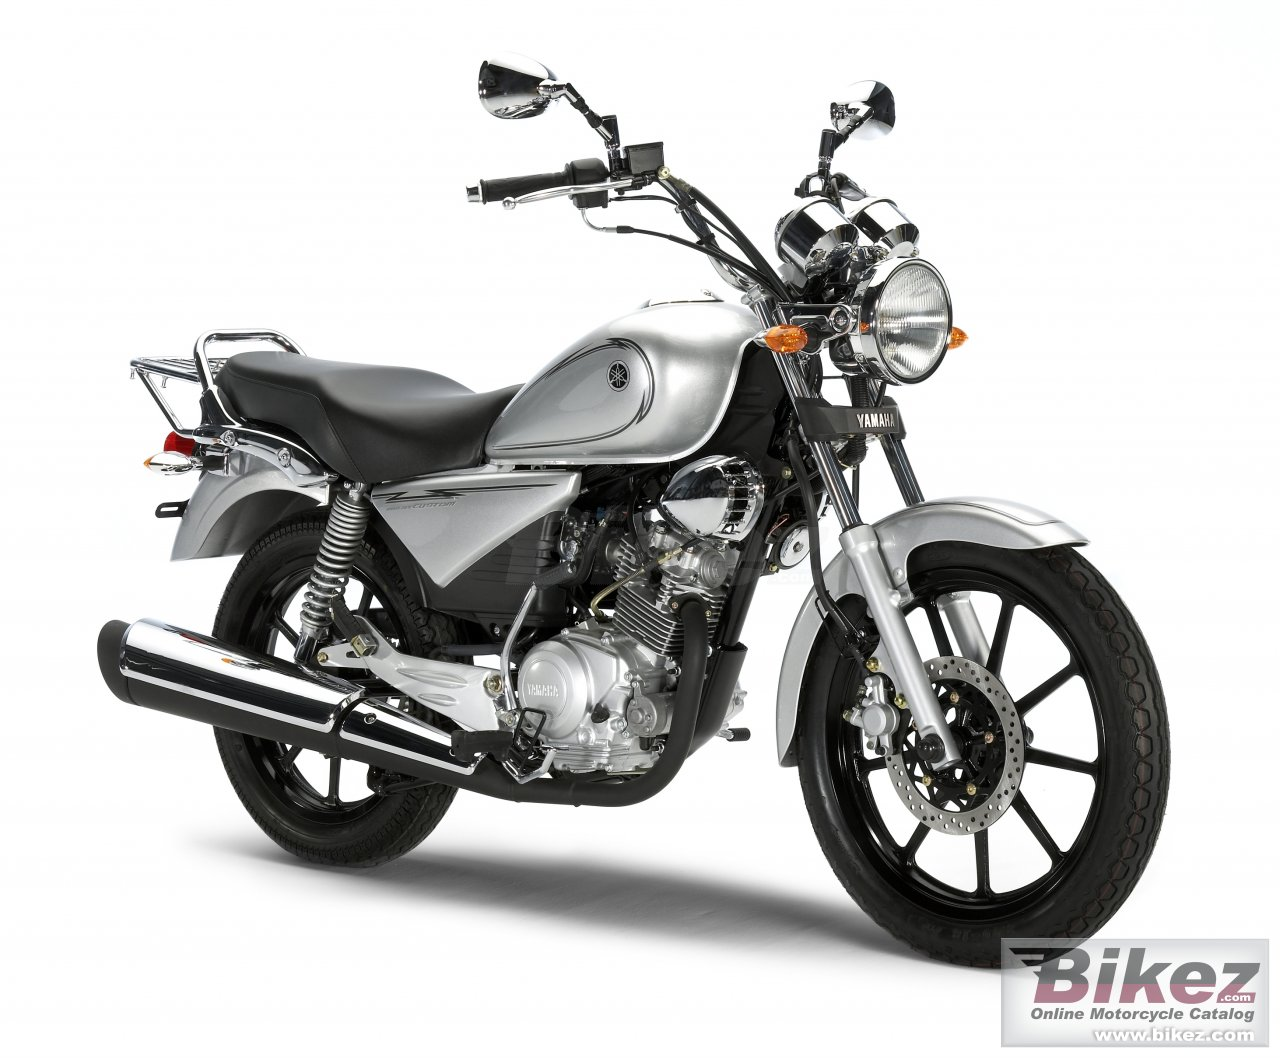 Big Yamaha ybr125 custom picture and wallpaper from Bikez.com